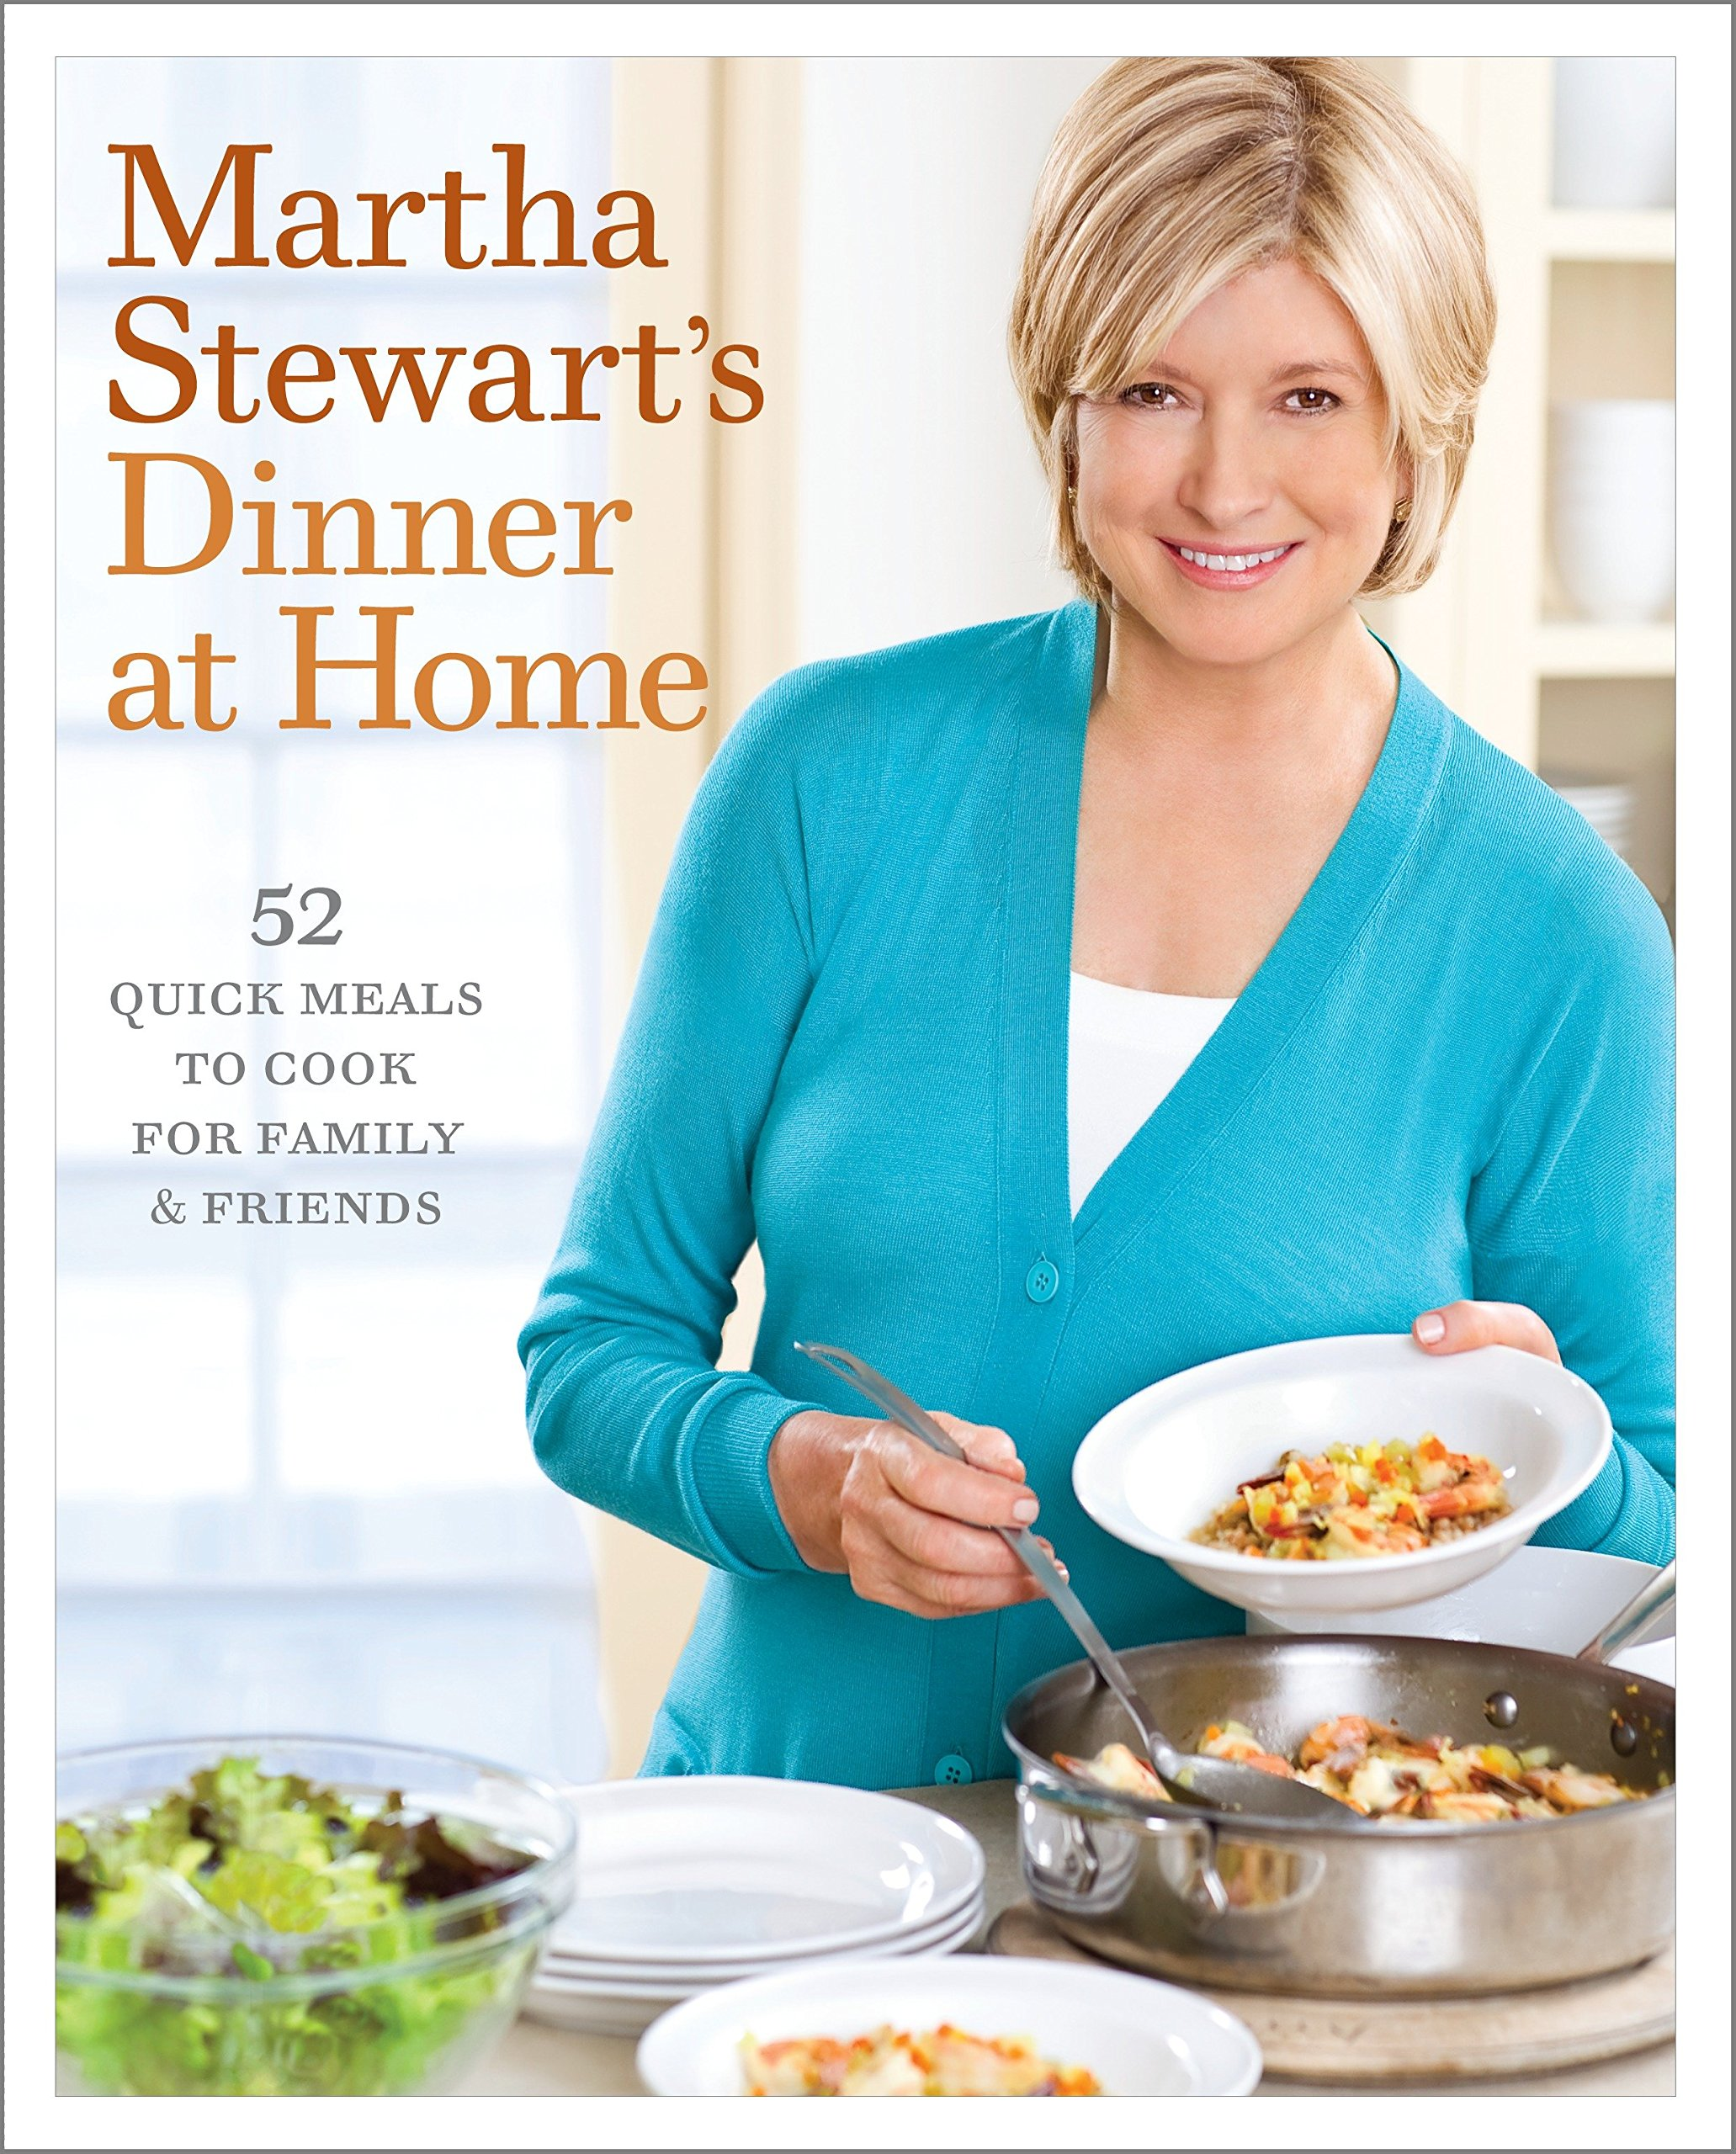 Martha Stewart's Dinner at Home: 52 Quick Meals to Cook for